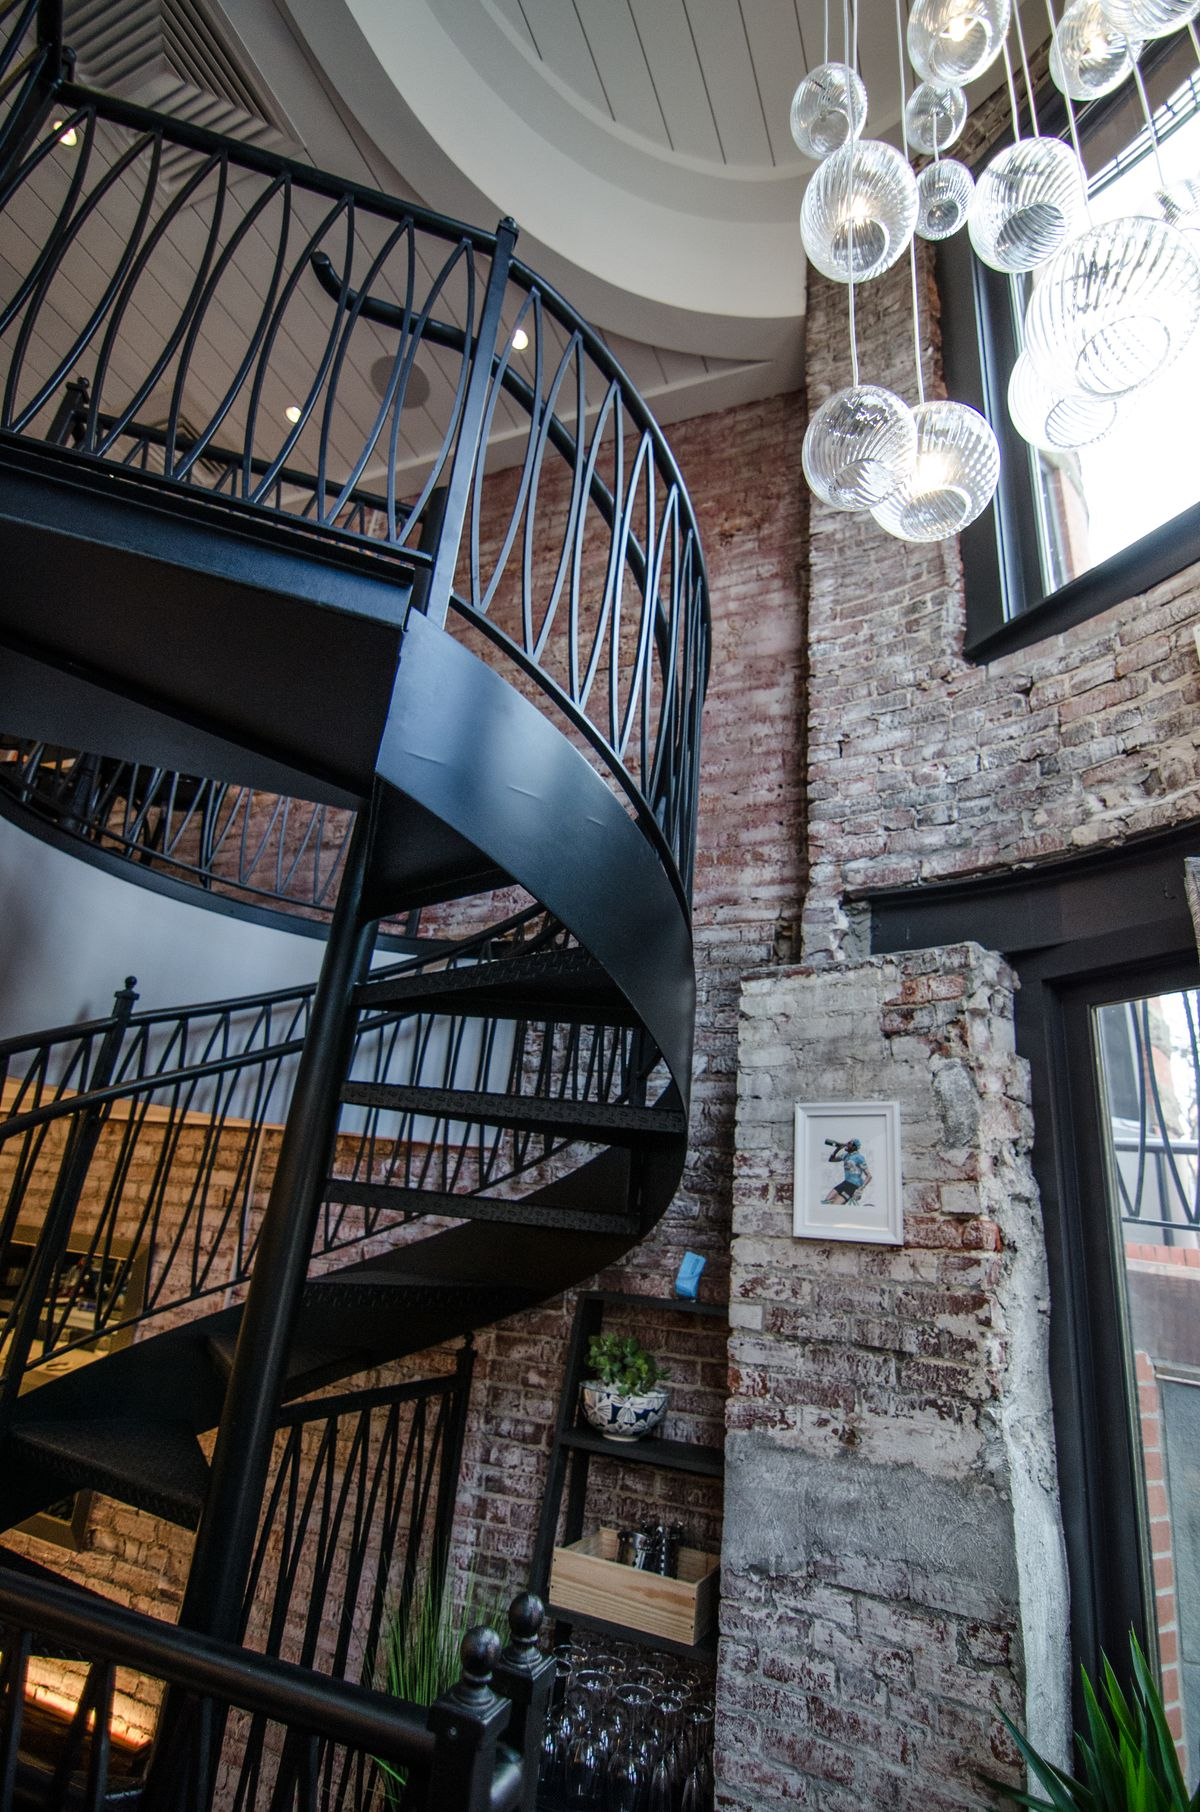 A black spiral staircase spans two floors of a restaurant, with white-washed brick walls in the background and a dangling light fixture made of glass globes.